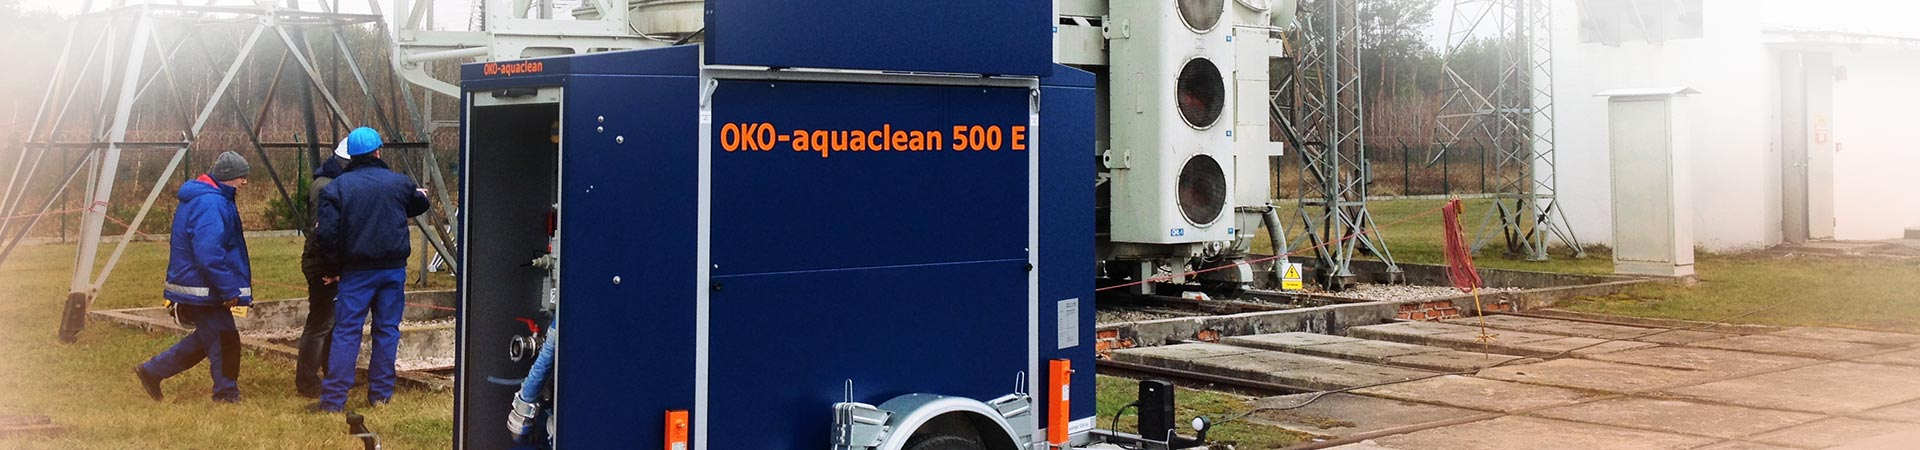 [b]OKO-aquaclean:[/b]